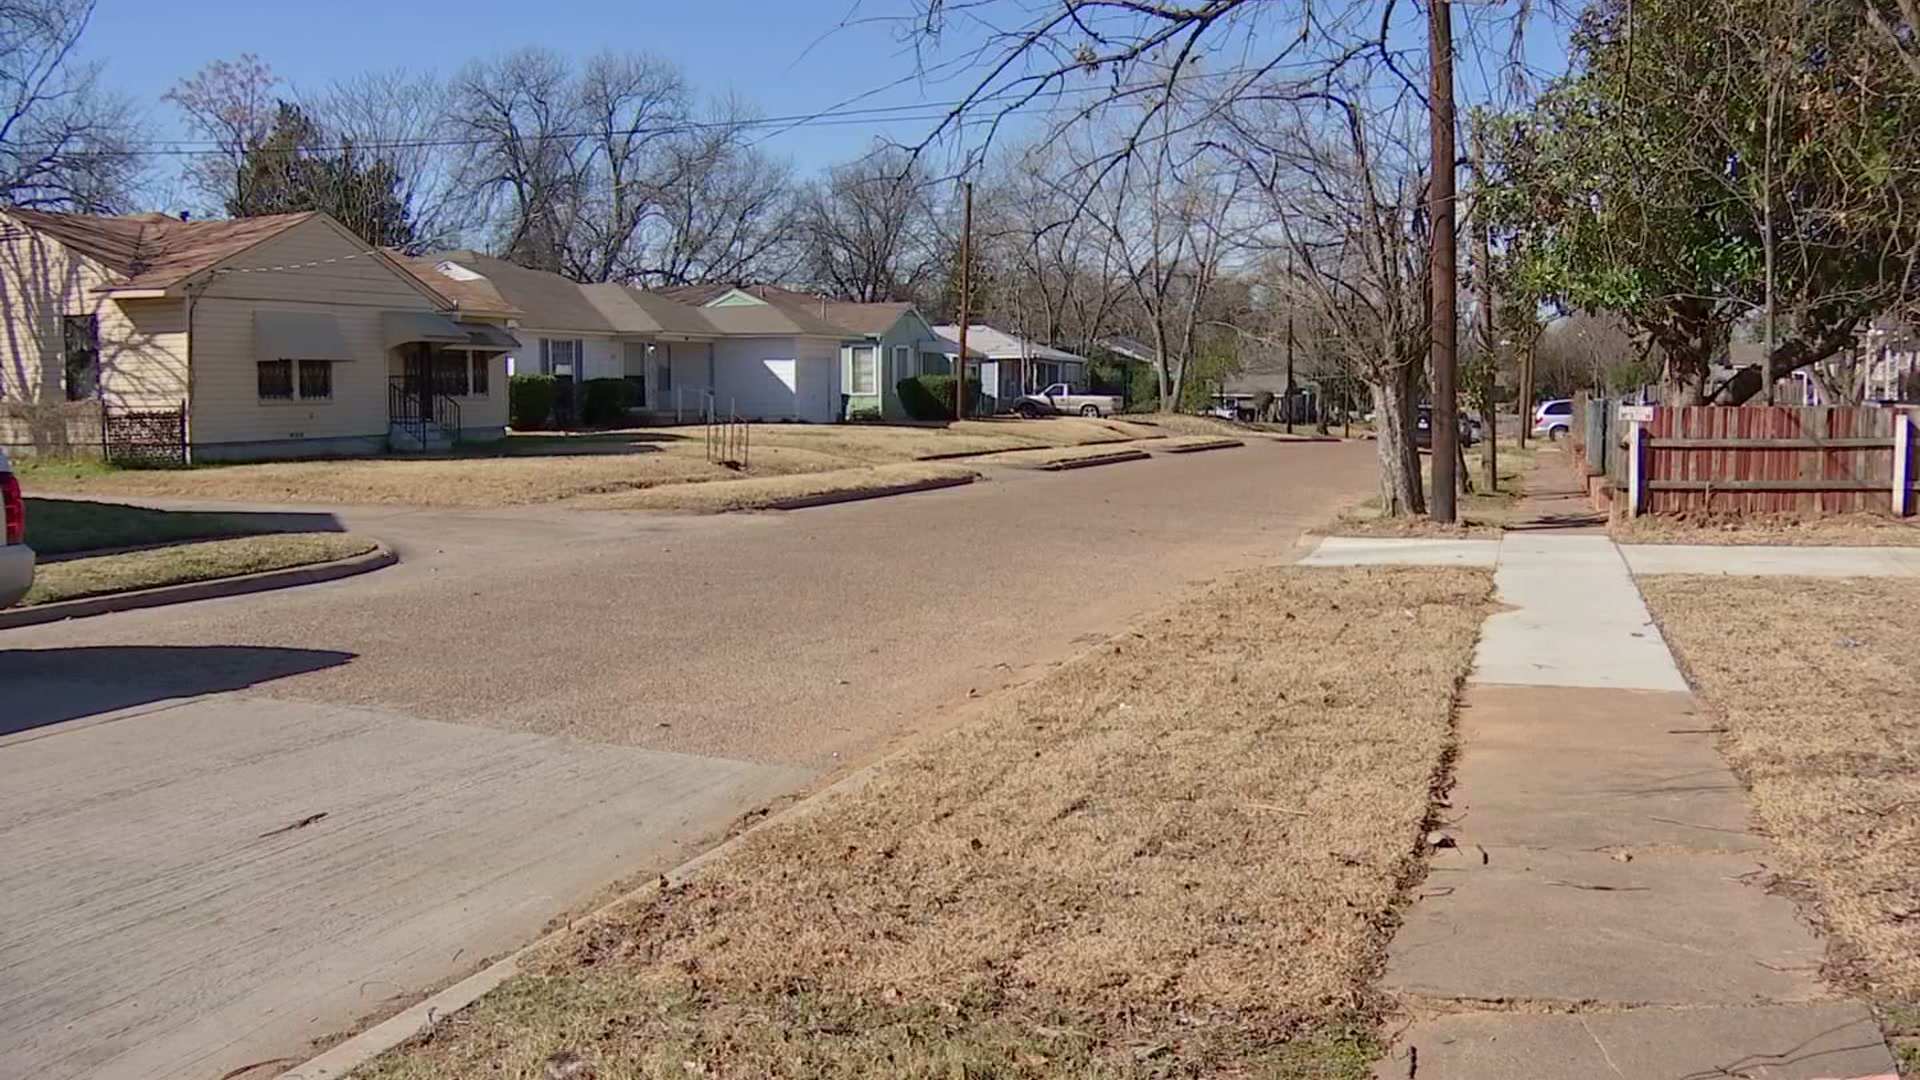 Dallas Homeowners Overwhelmed With Investors in Close to Downtown Neighborhoods